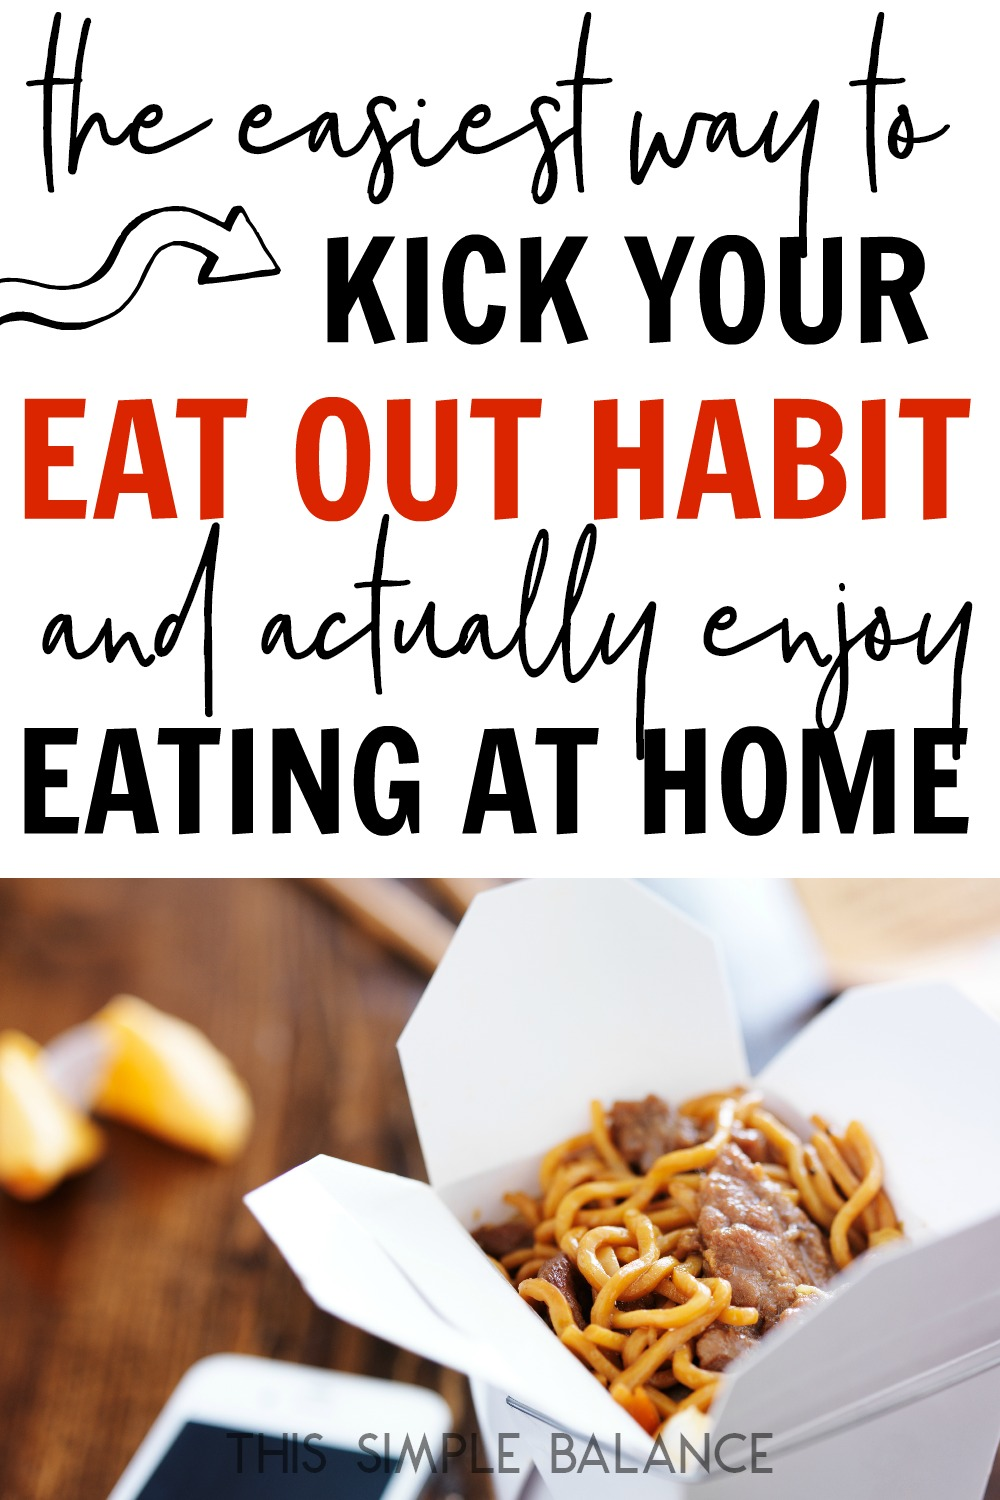 Want (make that NEED) to stop eating out so much because it's killing your budget? Make breaking up with eating out painless with this one super simple tip.